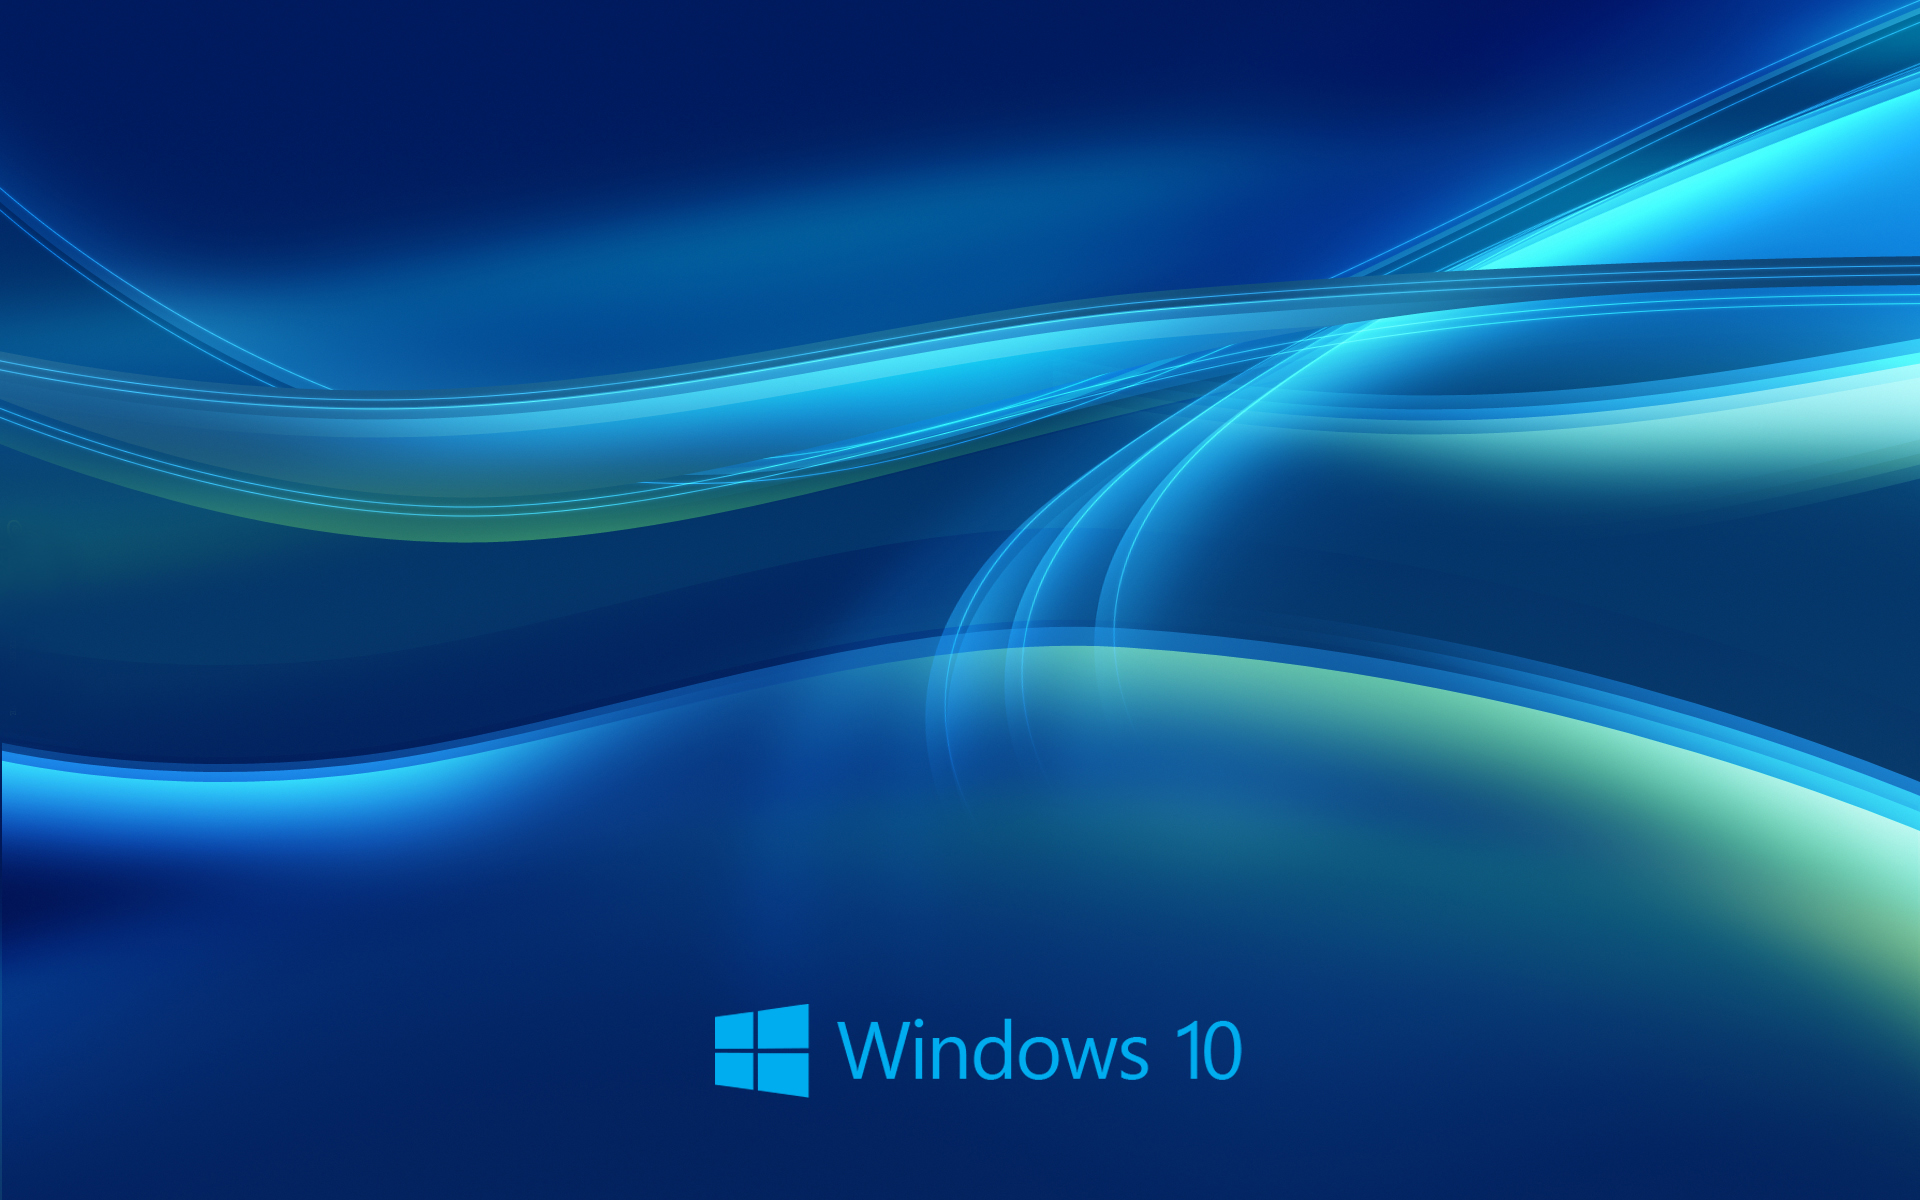 Free Download Windows 10 Logo Wallpaper And Theme Pack All